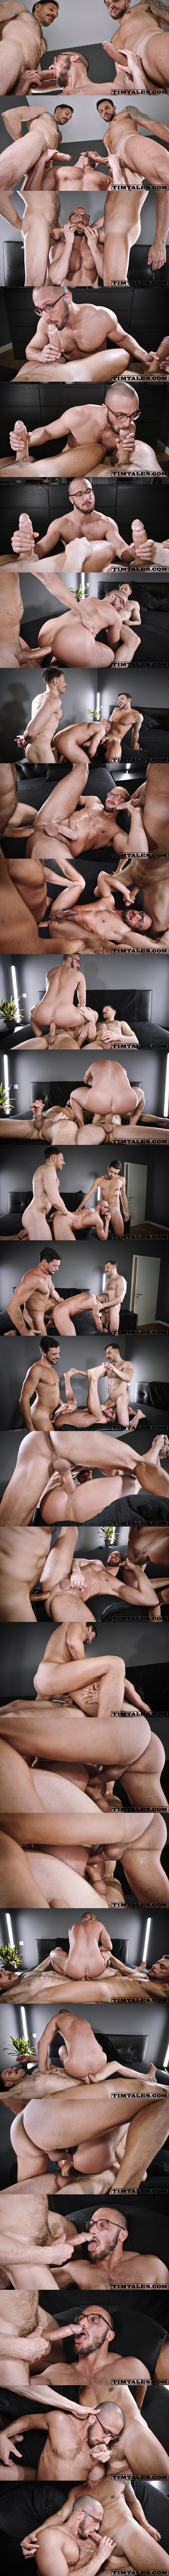 Big-dicked Brazilian muscle daddies Gaucho and Mario Galeno tag team and double fuck power bottom Saverio before they give Saverio facials in Saverio's first DP at Timtales 01